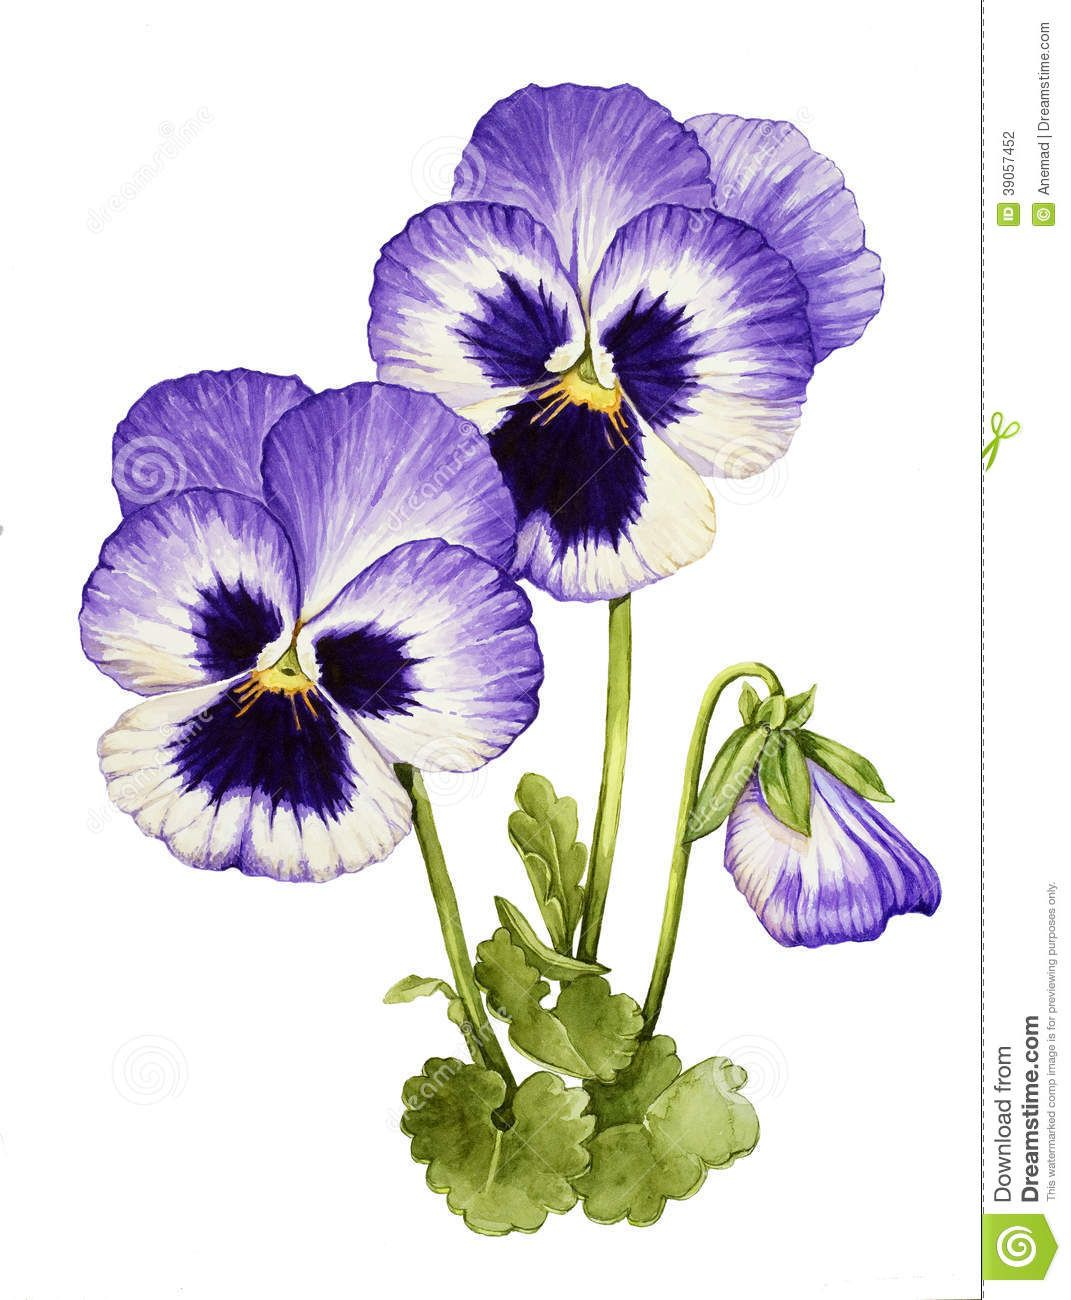 Illustration About Watercolor With Pansies On White Background Illustration Of Pansy Gardening Petal 39 Pansies Flowers Watercolor Flowers Flower Painting